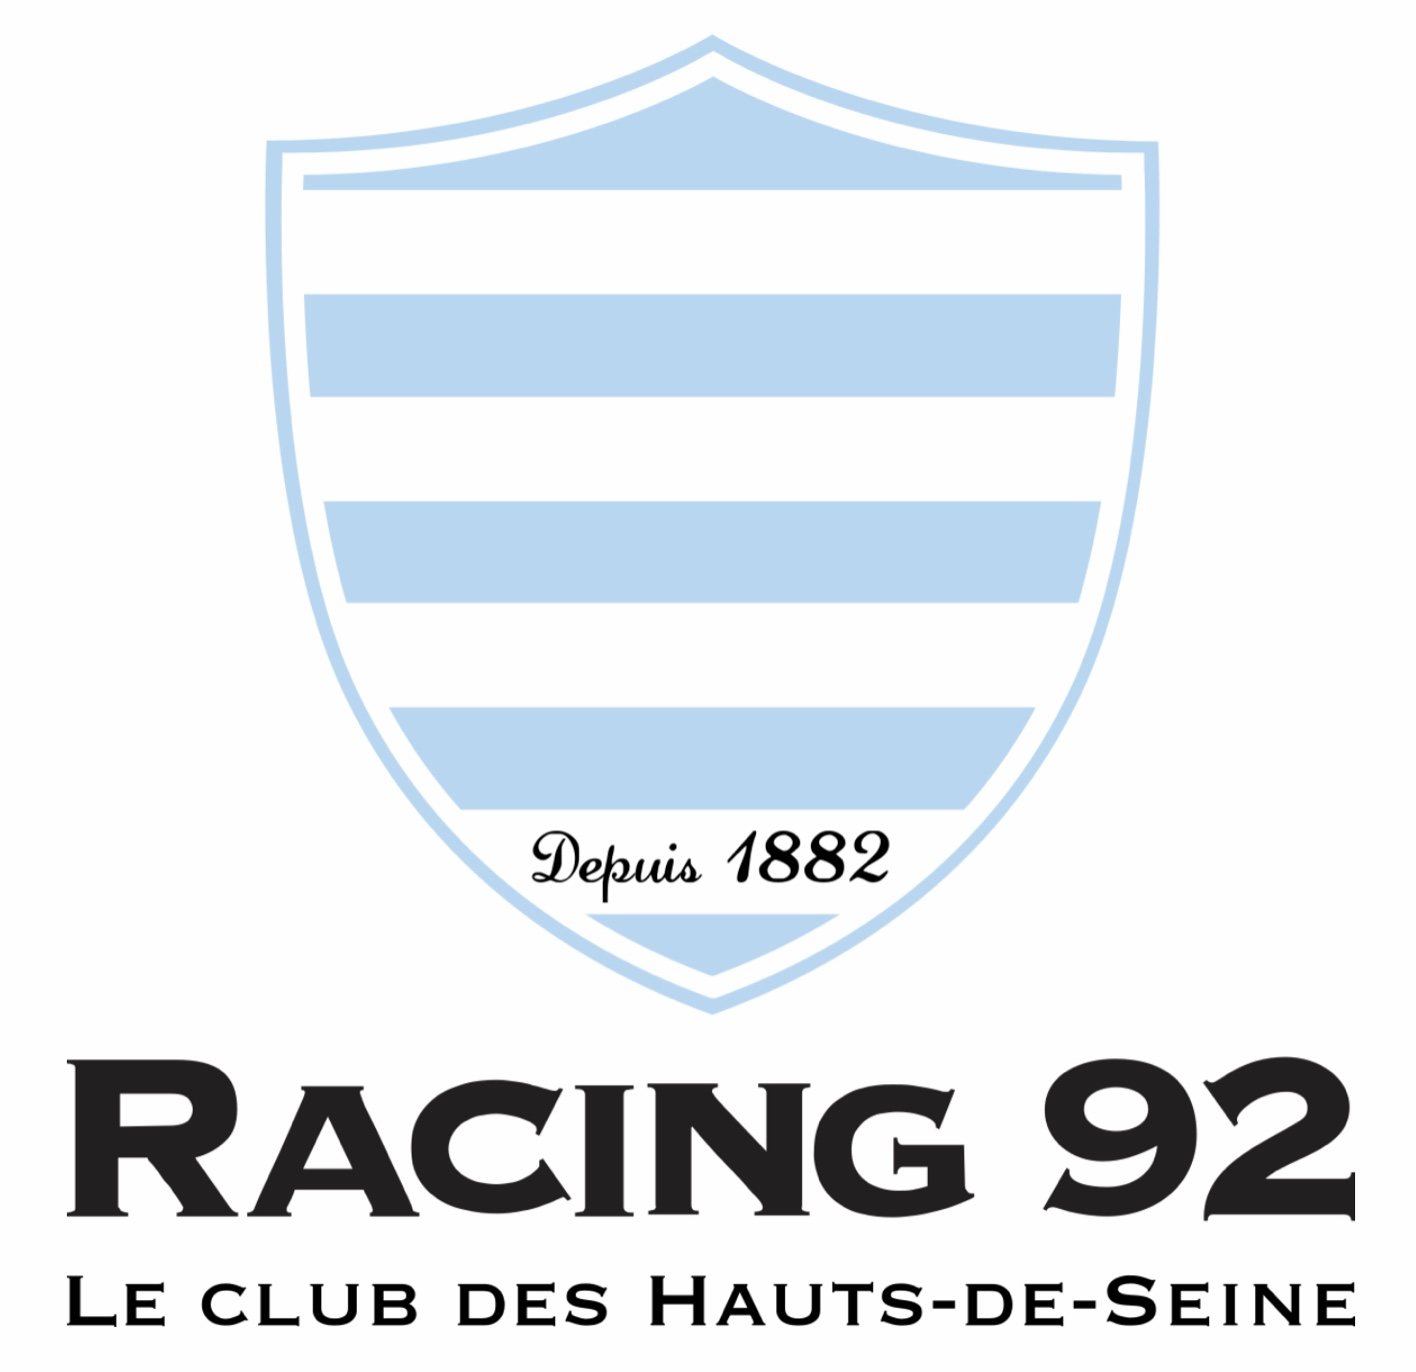 Club Rugby Racing 92